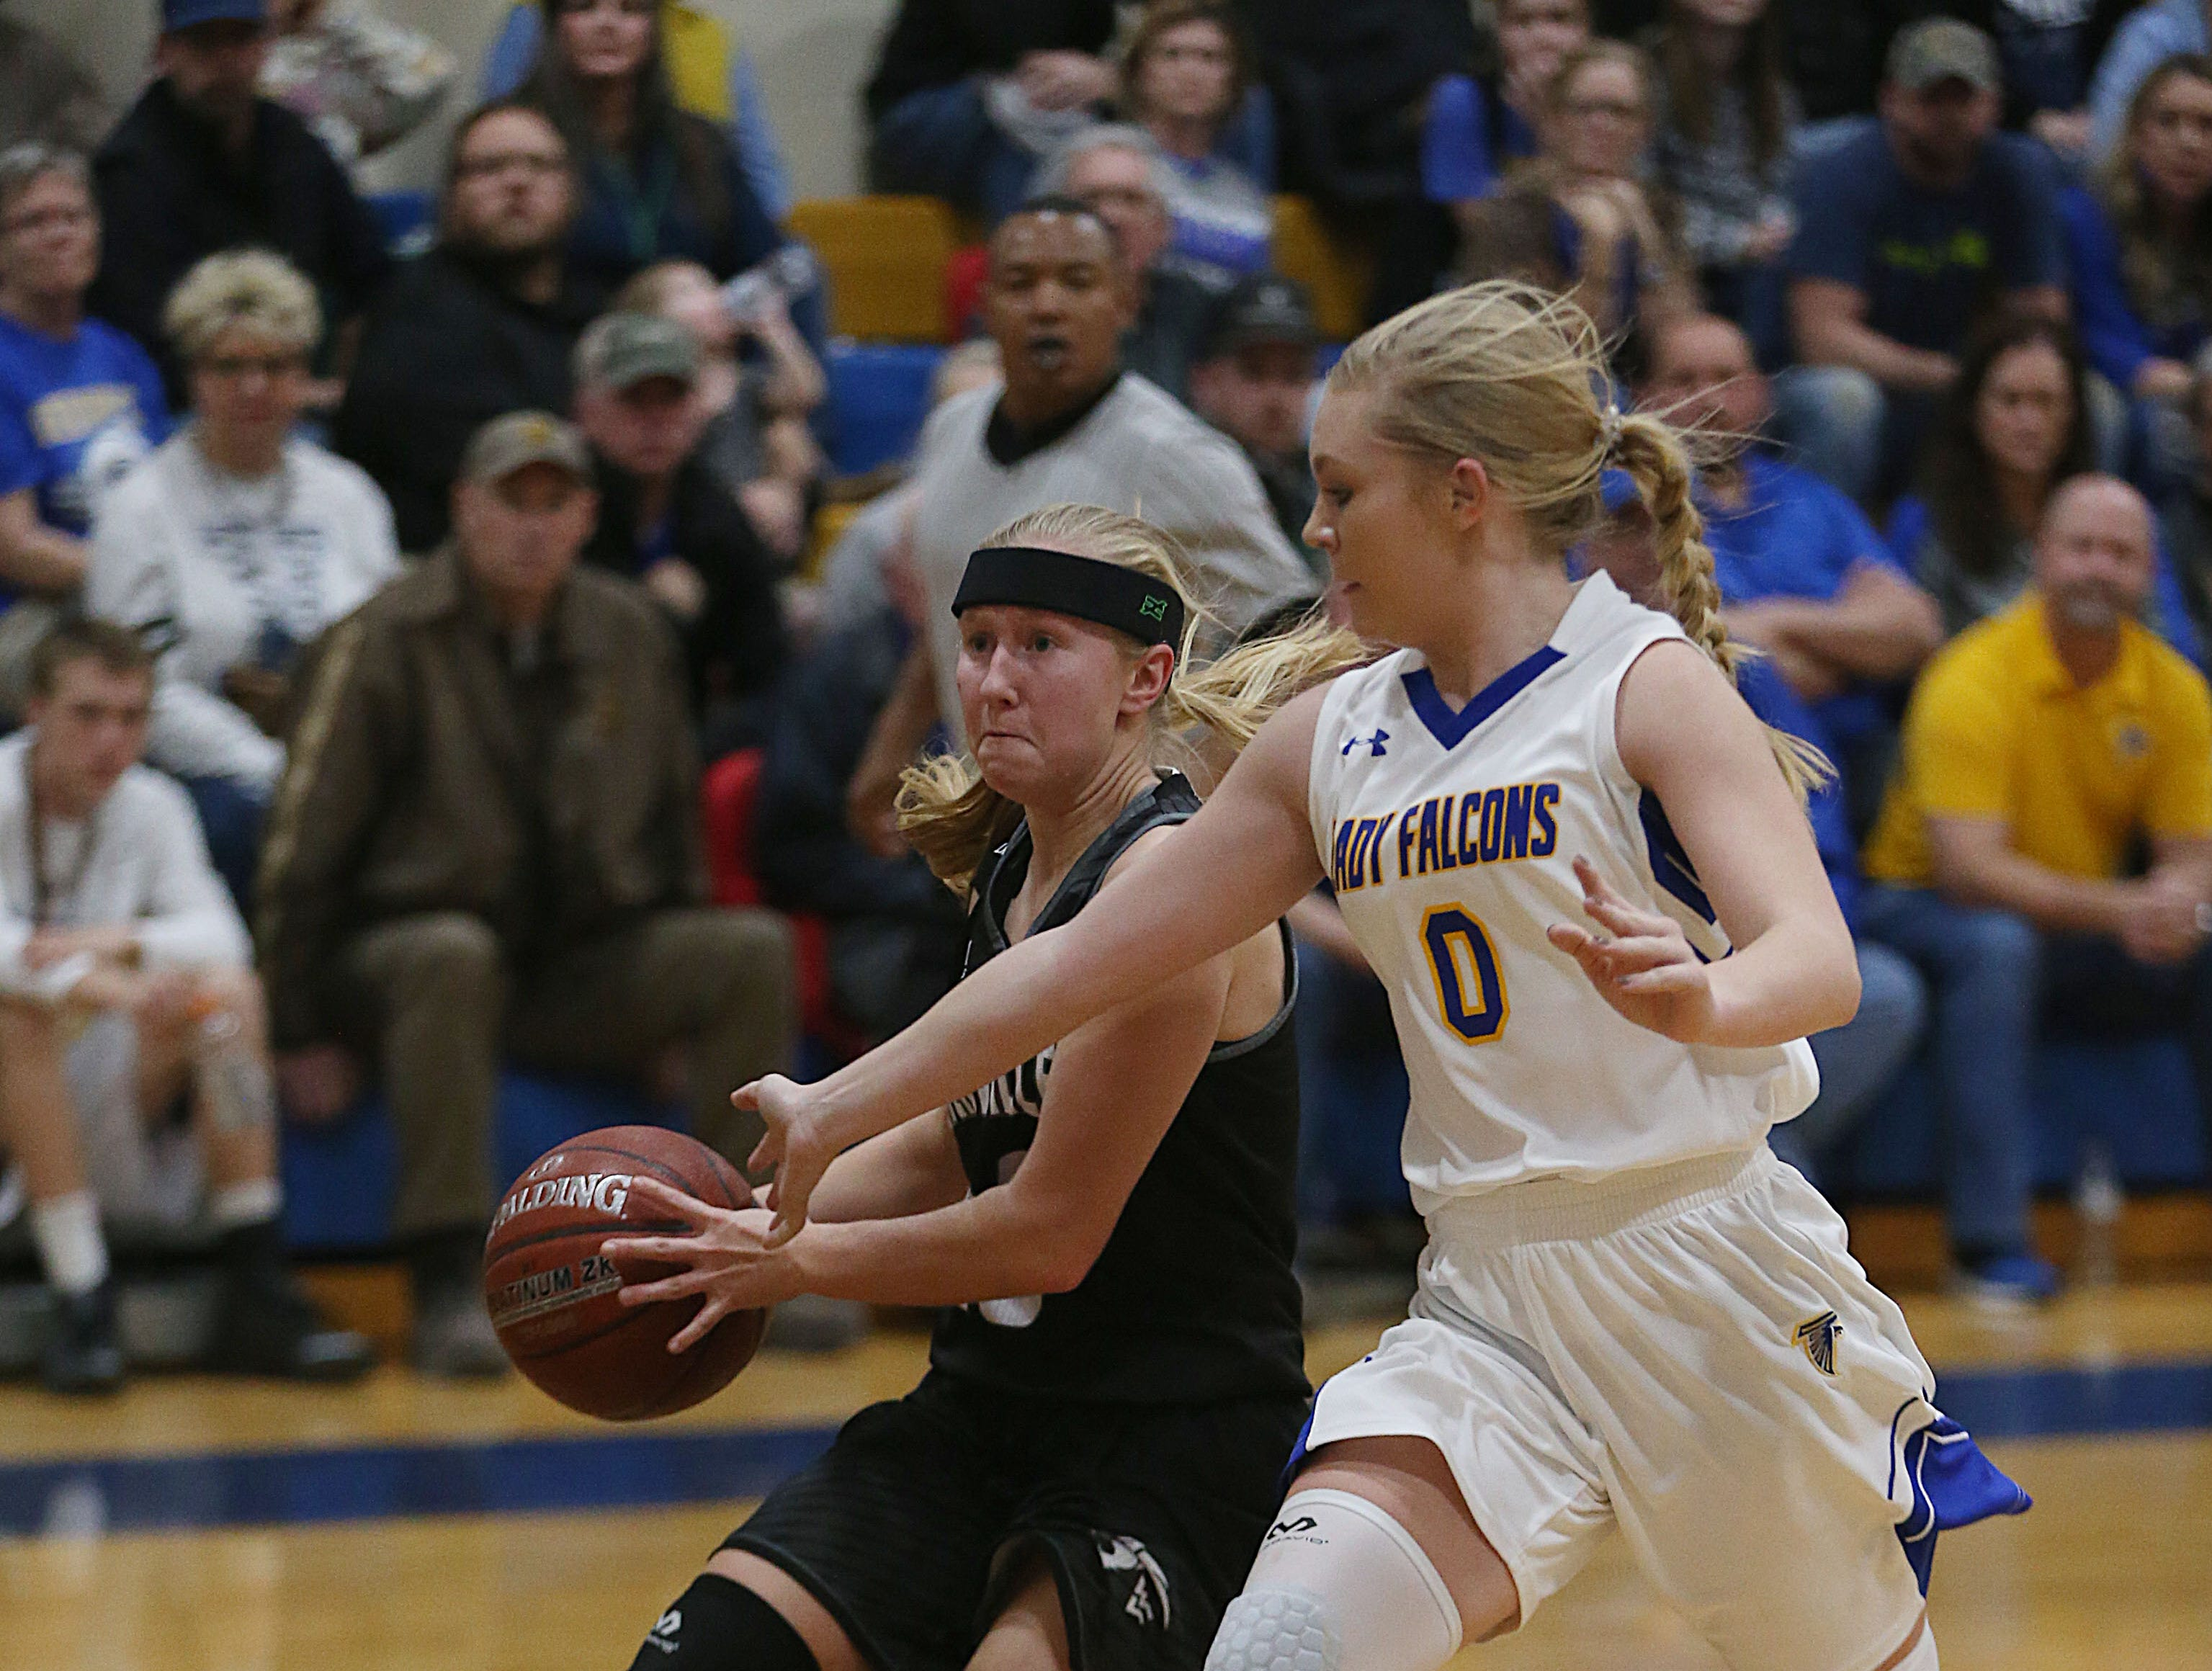 Veribest's K. Wheeless (#0) tries to take the ball from Water Valley's Brittany Sutton (#10) Tuesday, Jan. 8, 2019 during their game in Veribest.